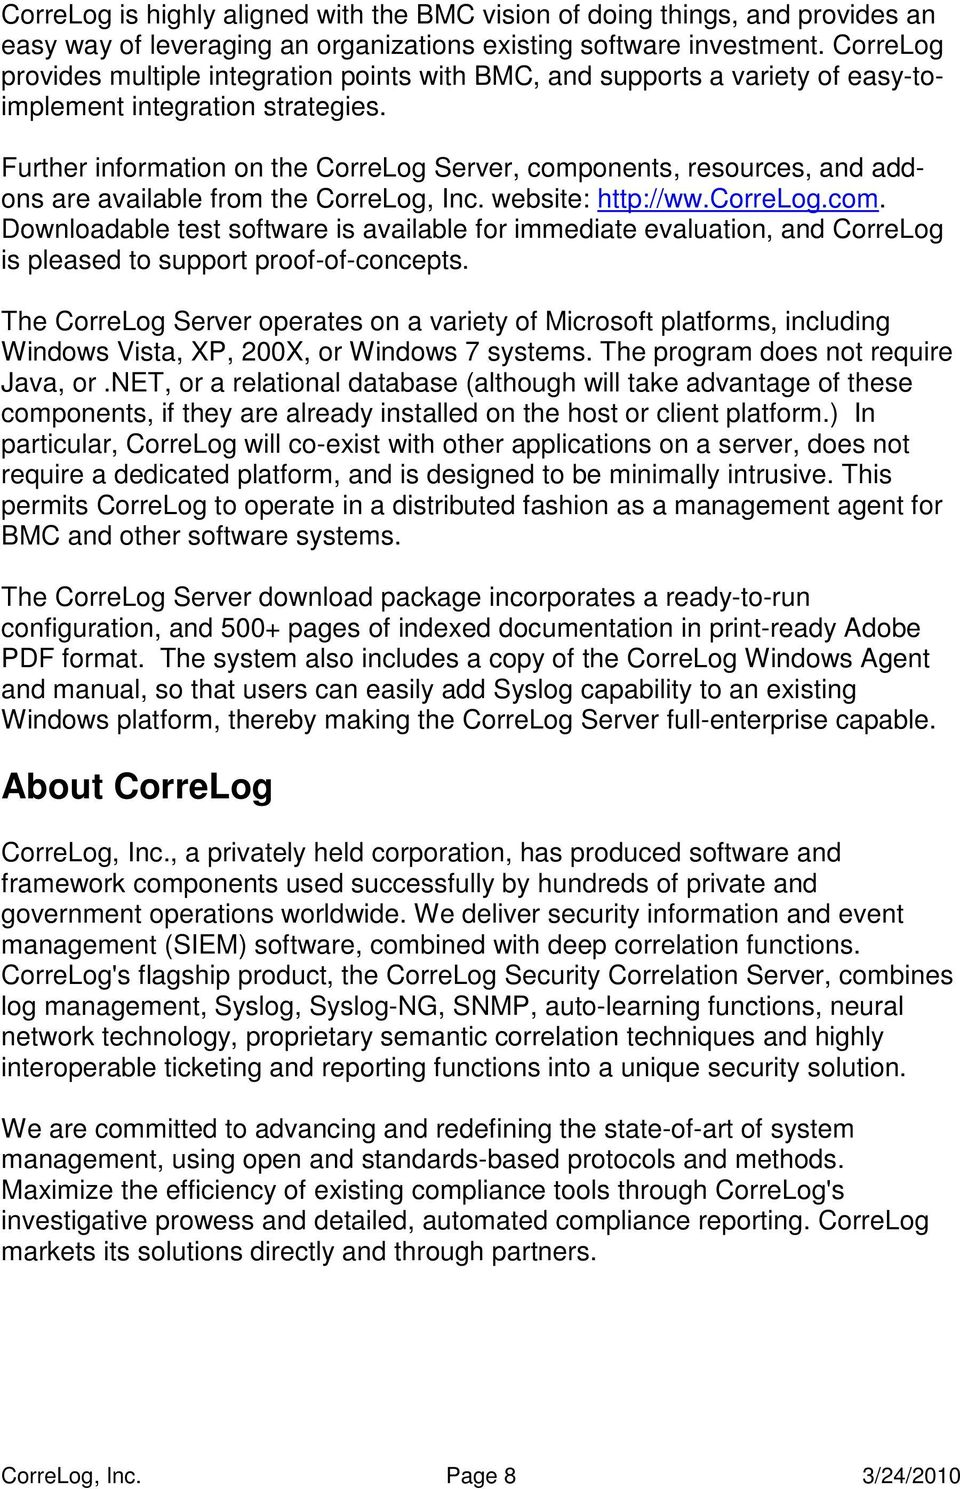 Further information on the CorreLog Server, components, resources, and addons are available from the CorreLog, Inc. website: http://ww.correlog.com. Downloadable test software is available for immediate evaluation, and CorreLog is pleased to support proof-of-concepts.